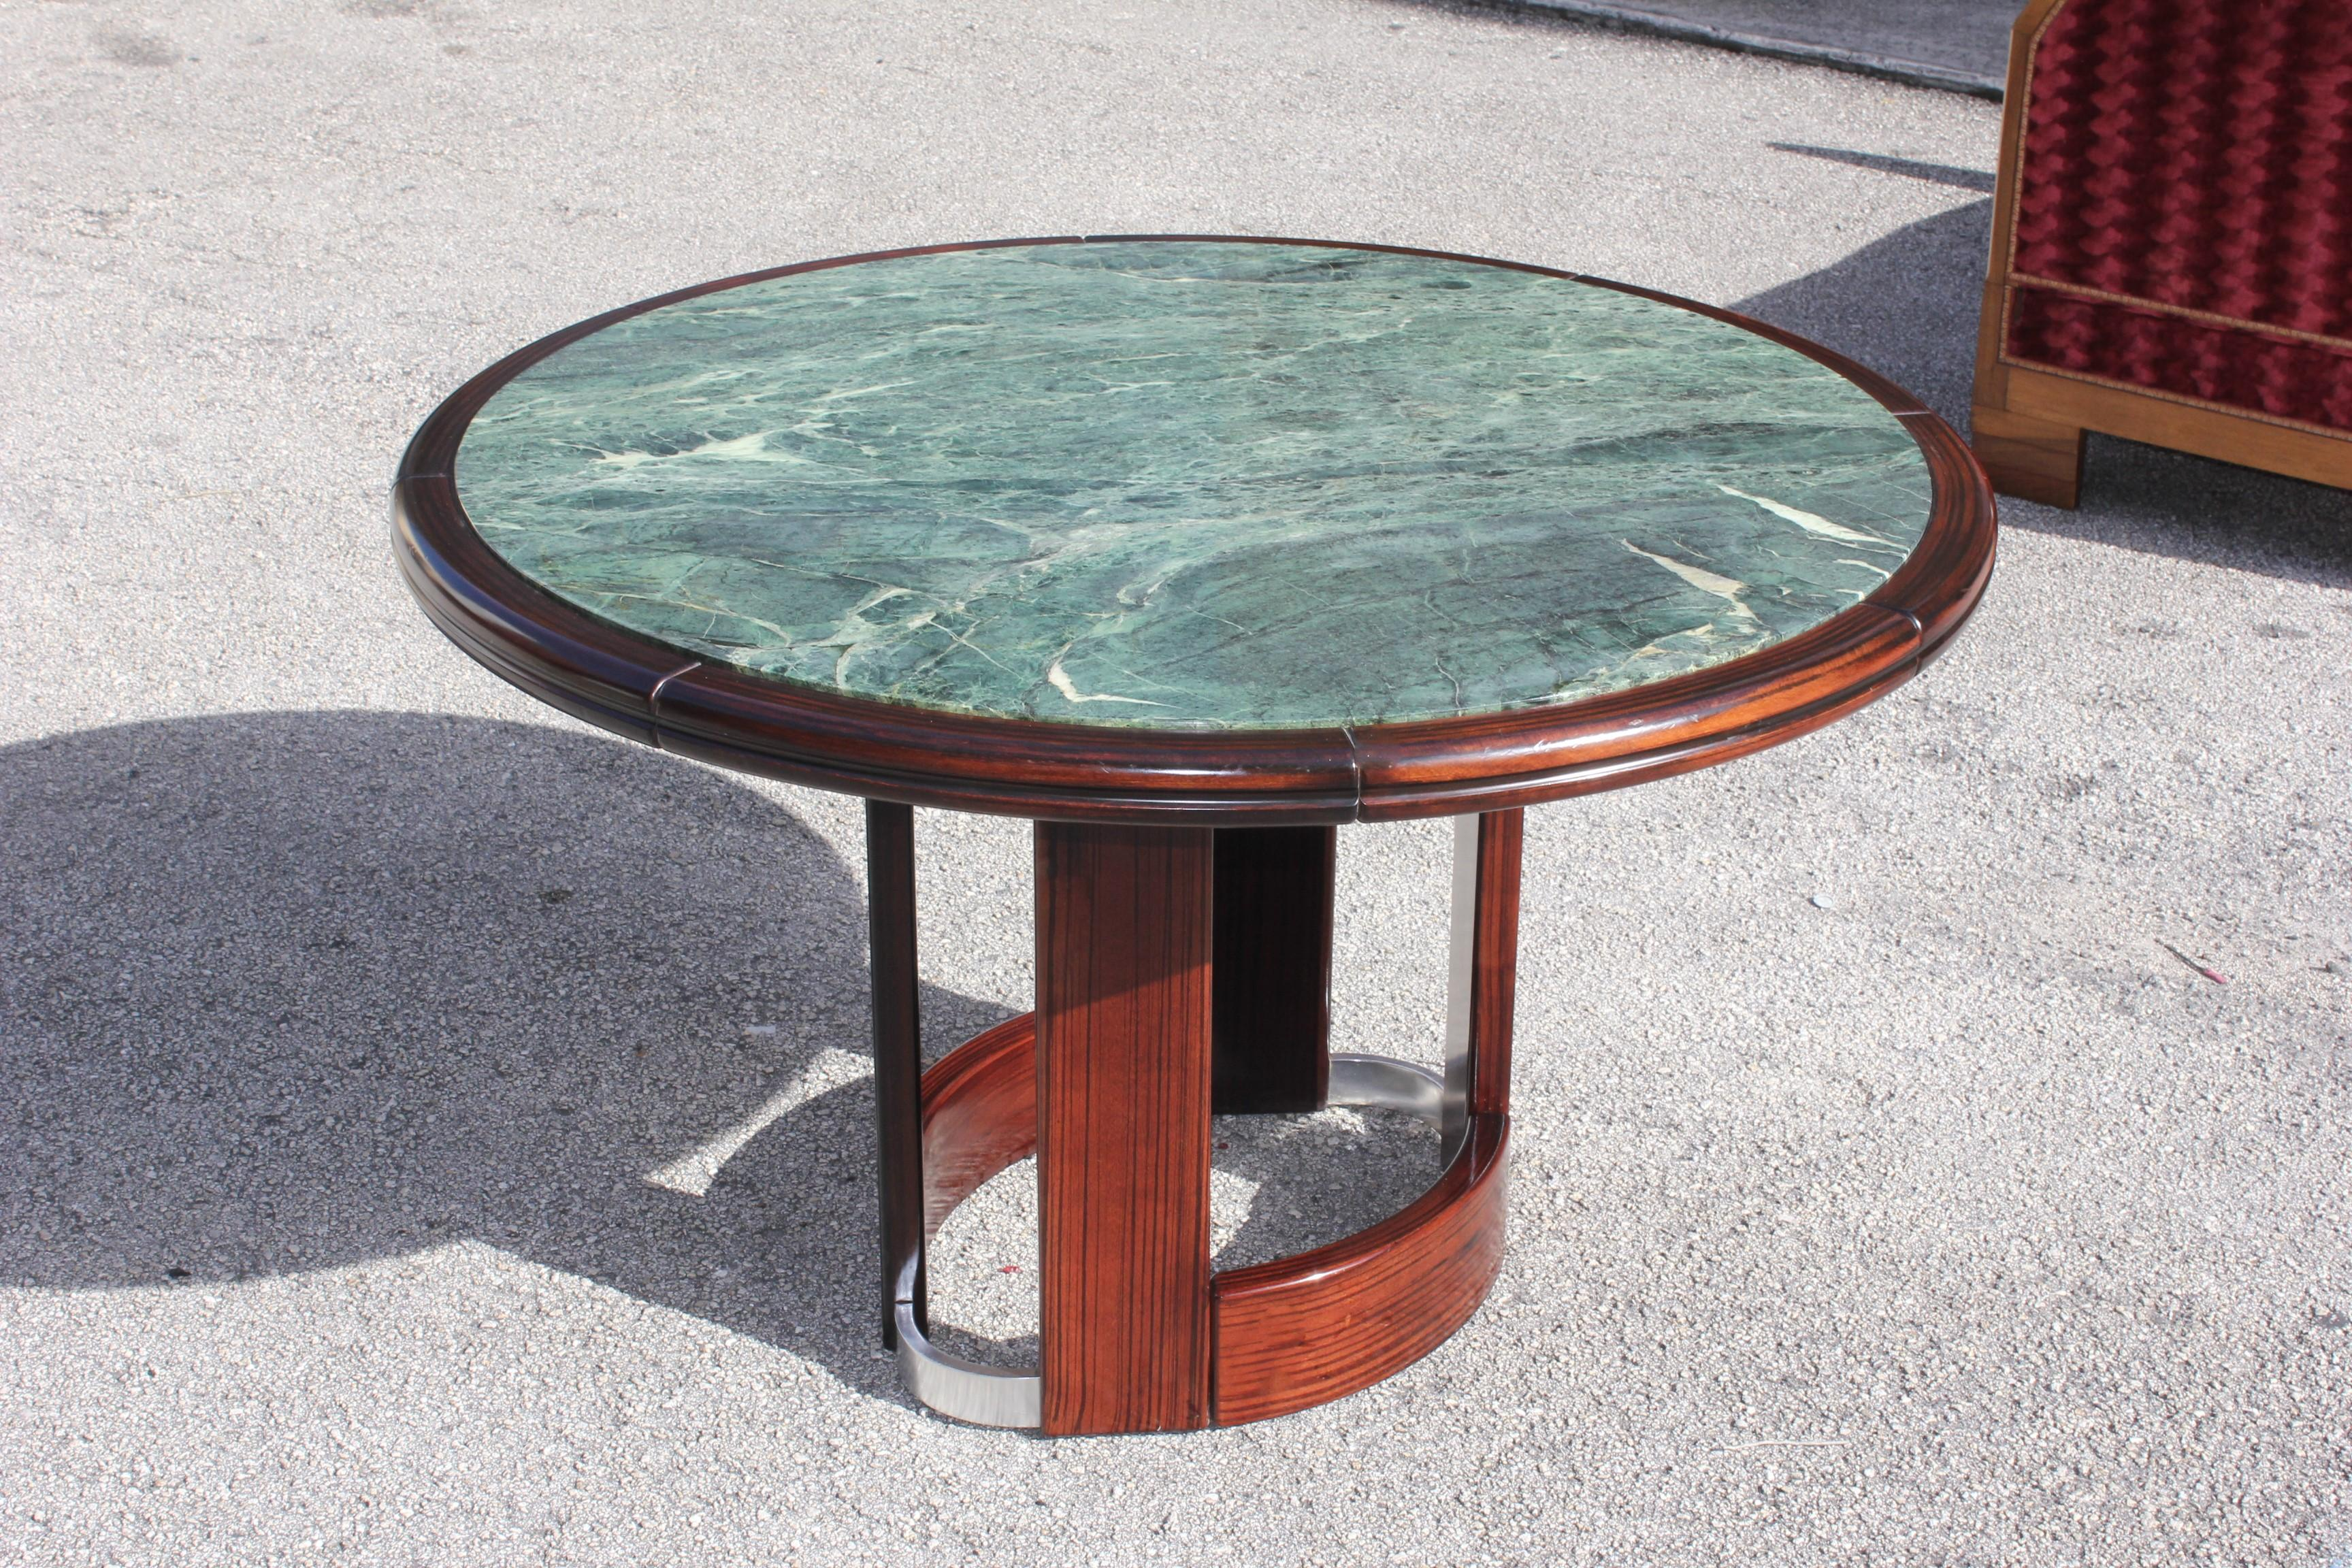 1900-1950 Monumental French Art Deco Macassar Ebony Round Center Table Or Dining Table .